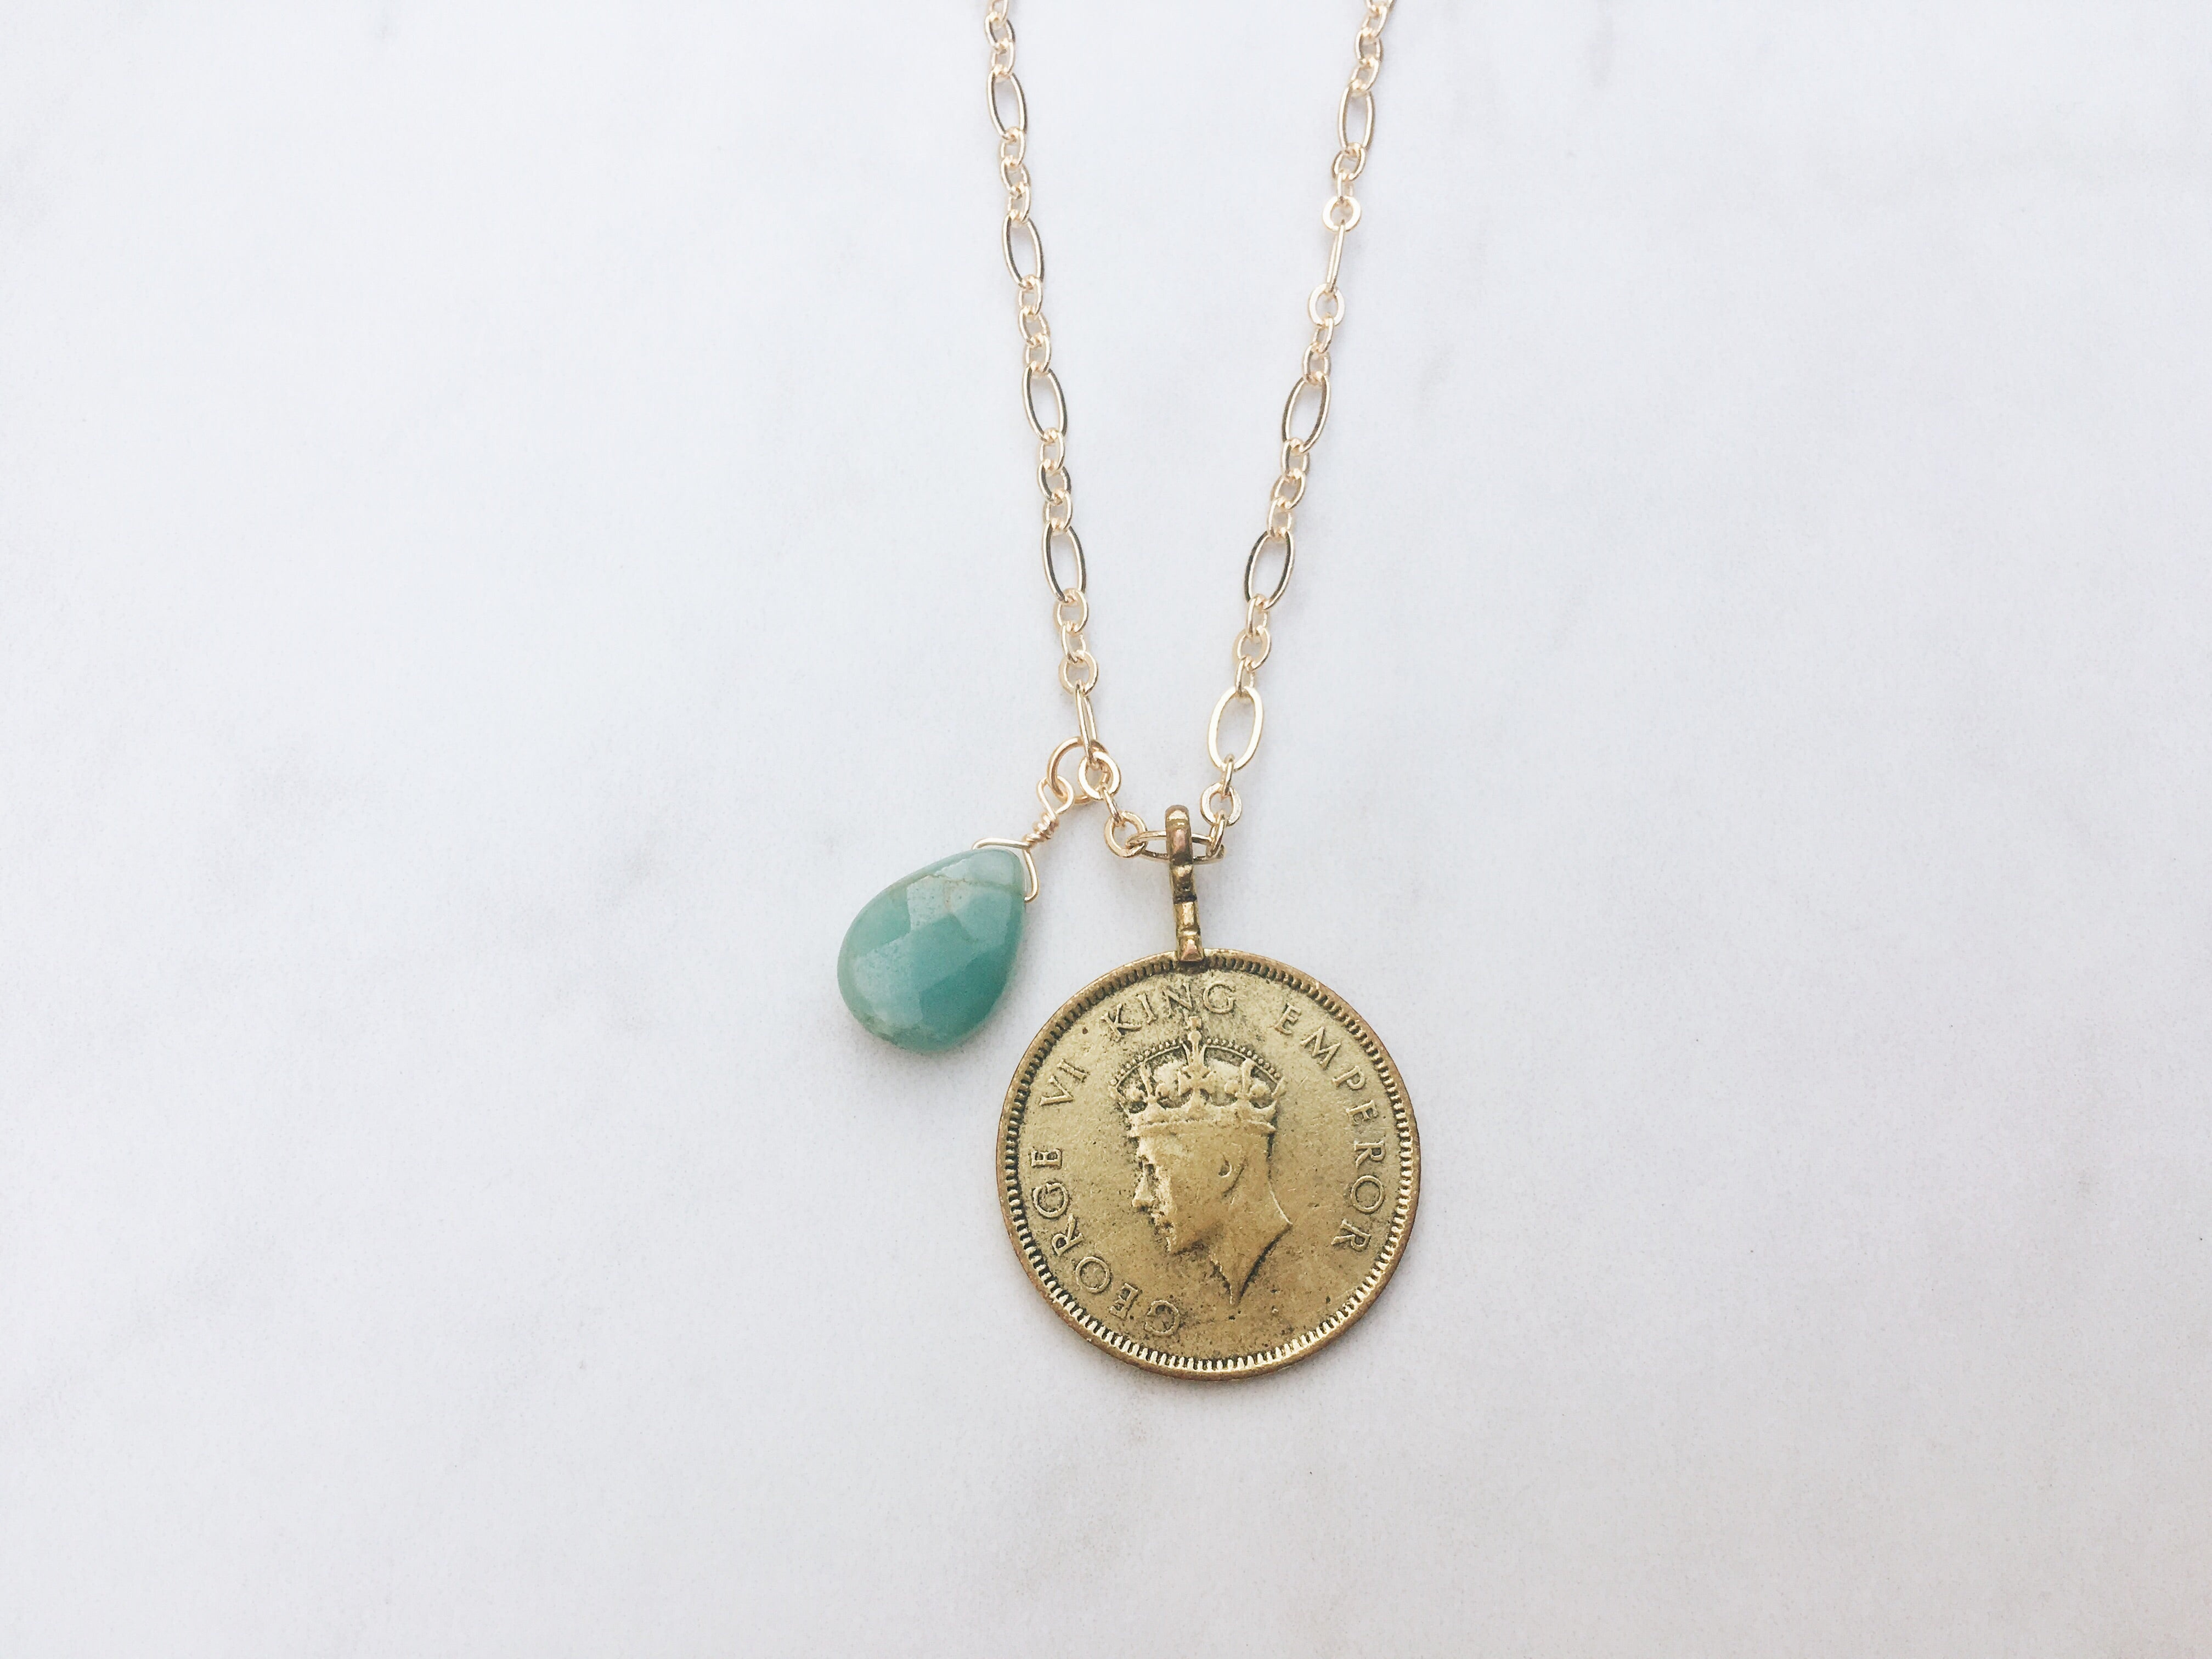 Calypso Coin Necklace